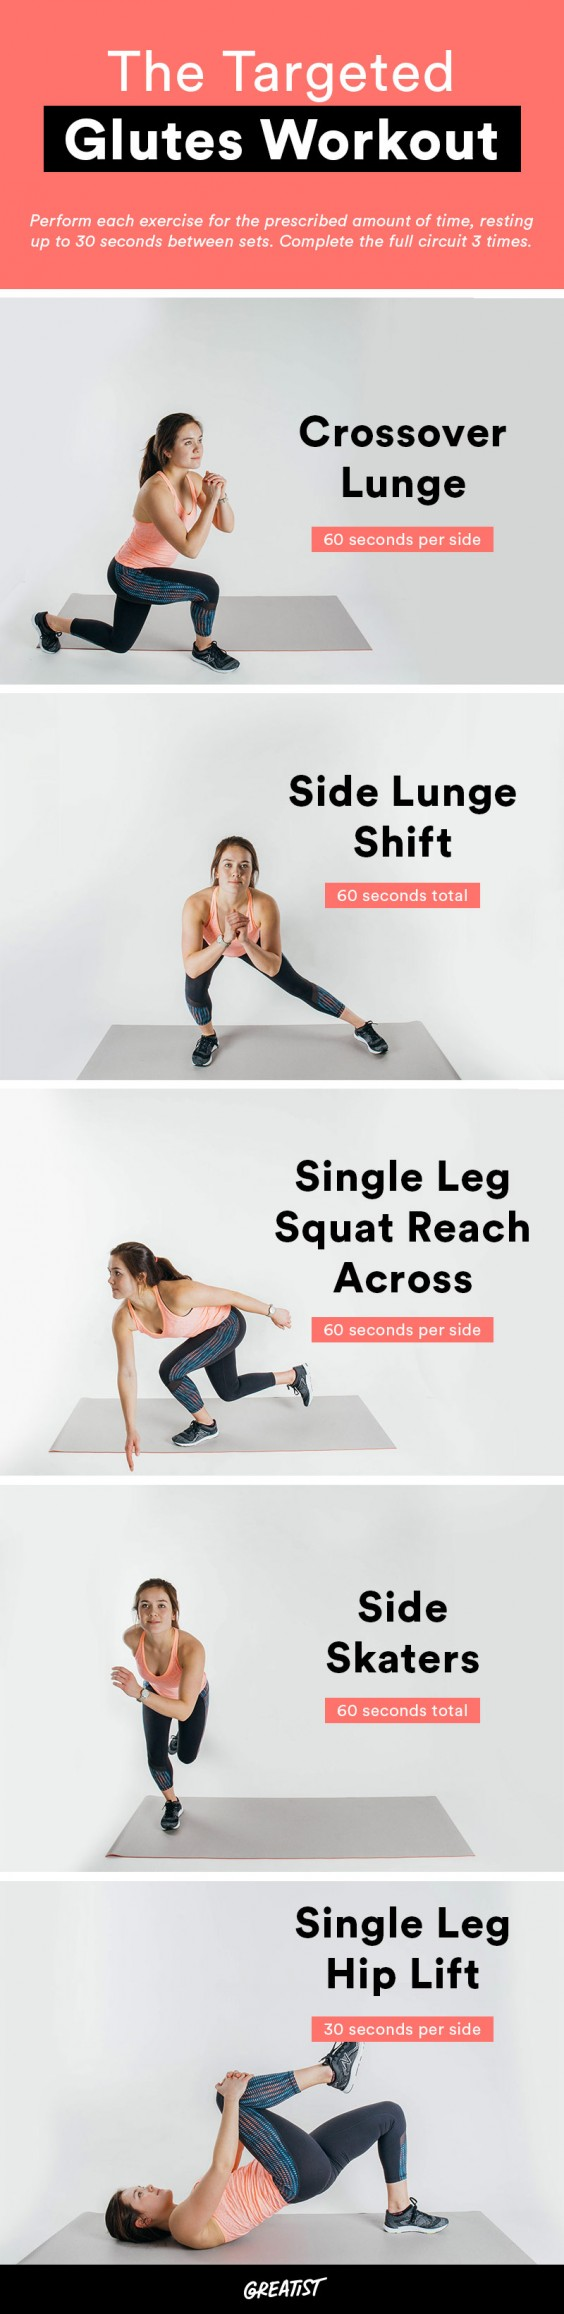 Butt Workout: 24 Simple Glute Exercises You Can Do Almost